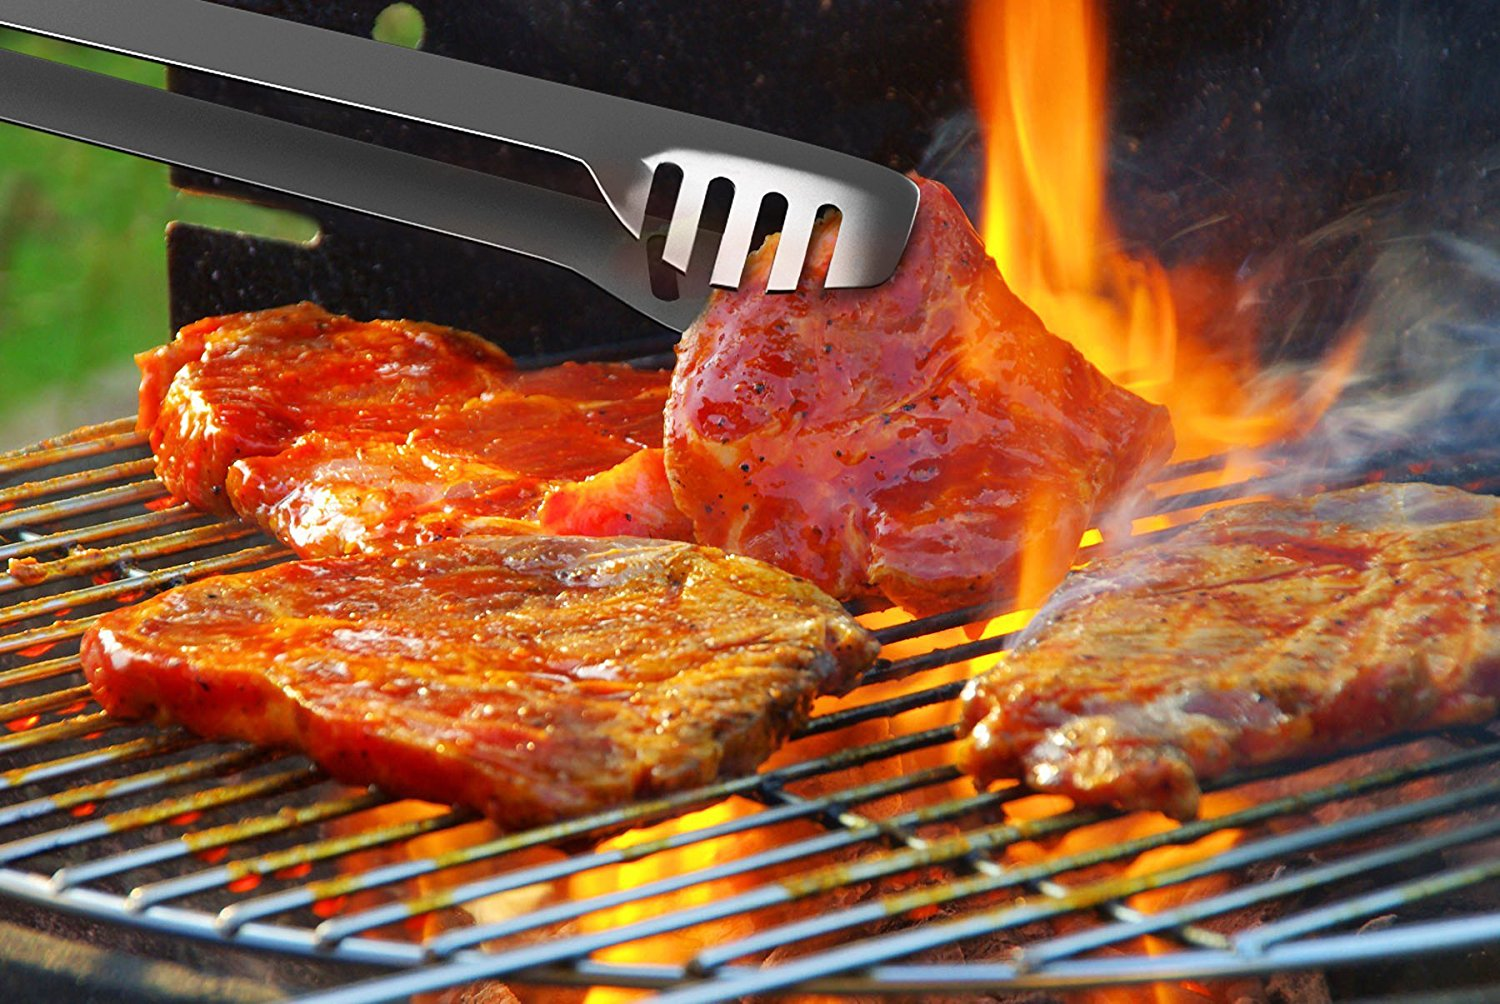 barbecue grill amazon.com : bbq grill tools set with 16 barbecue accessories - stainless  steel utensils JZVUTLS